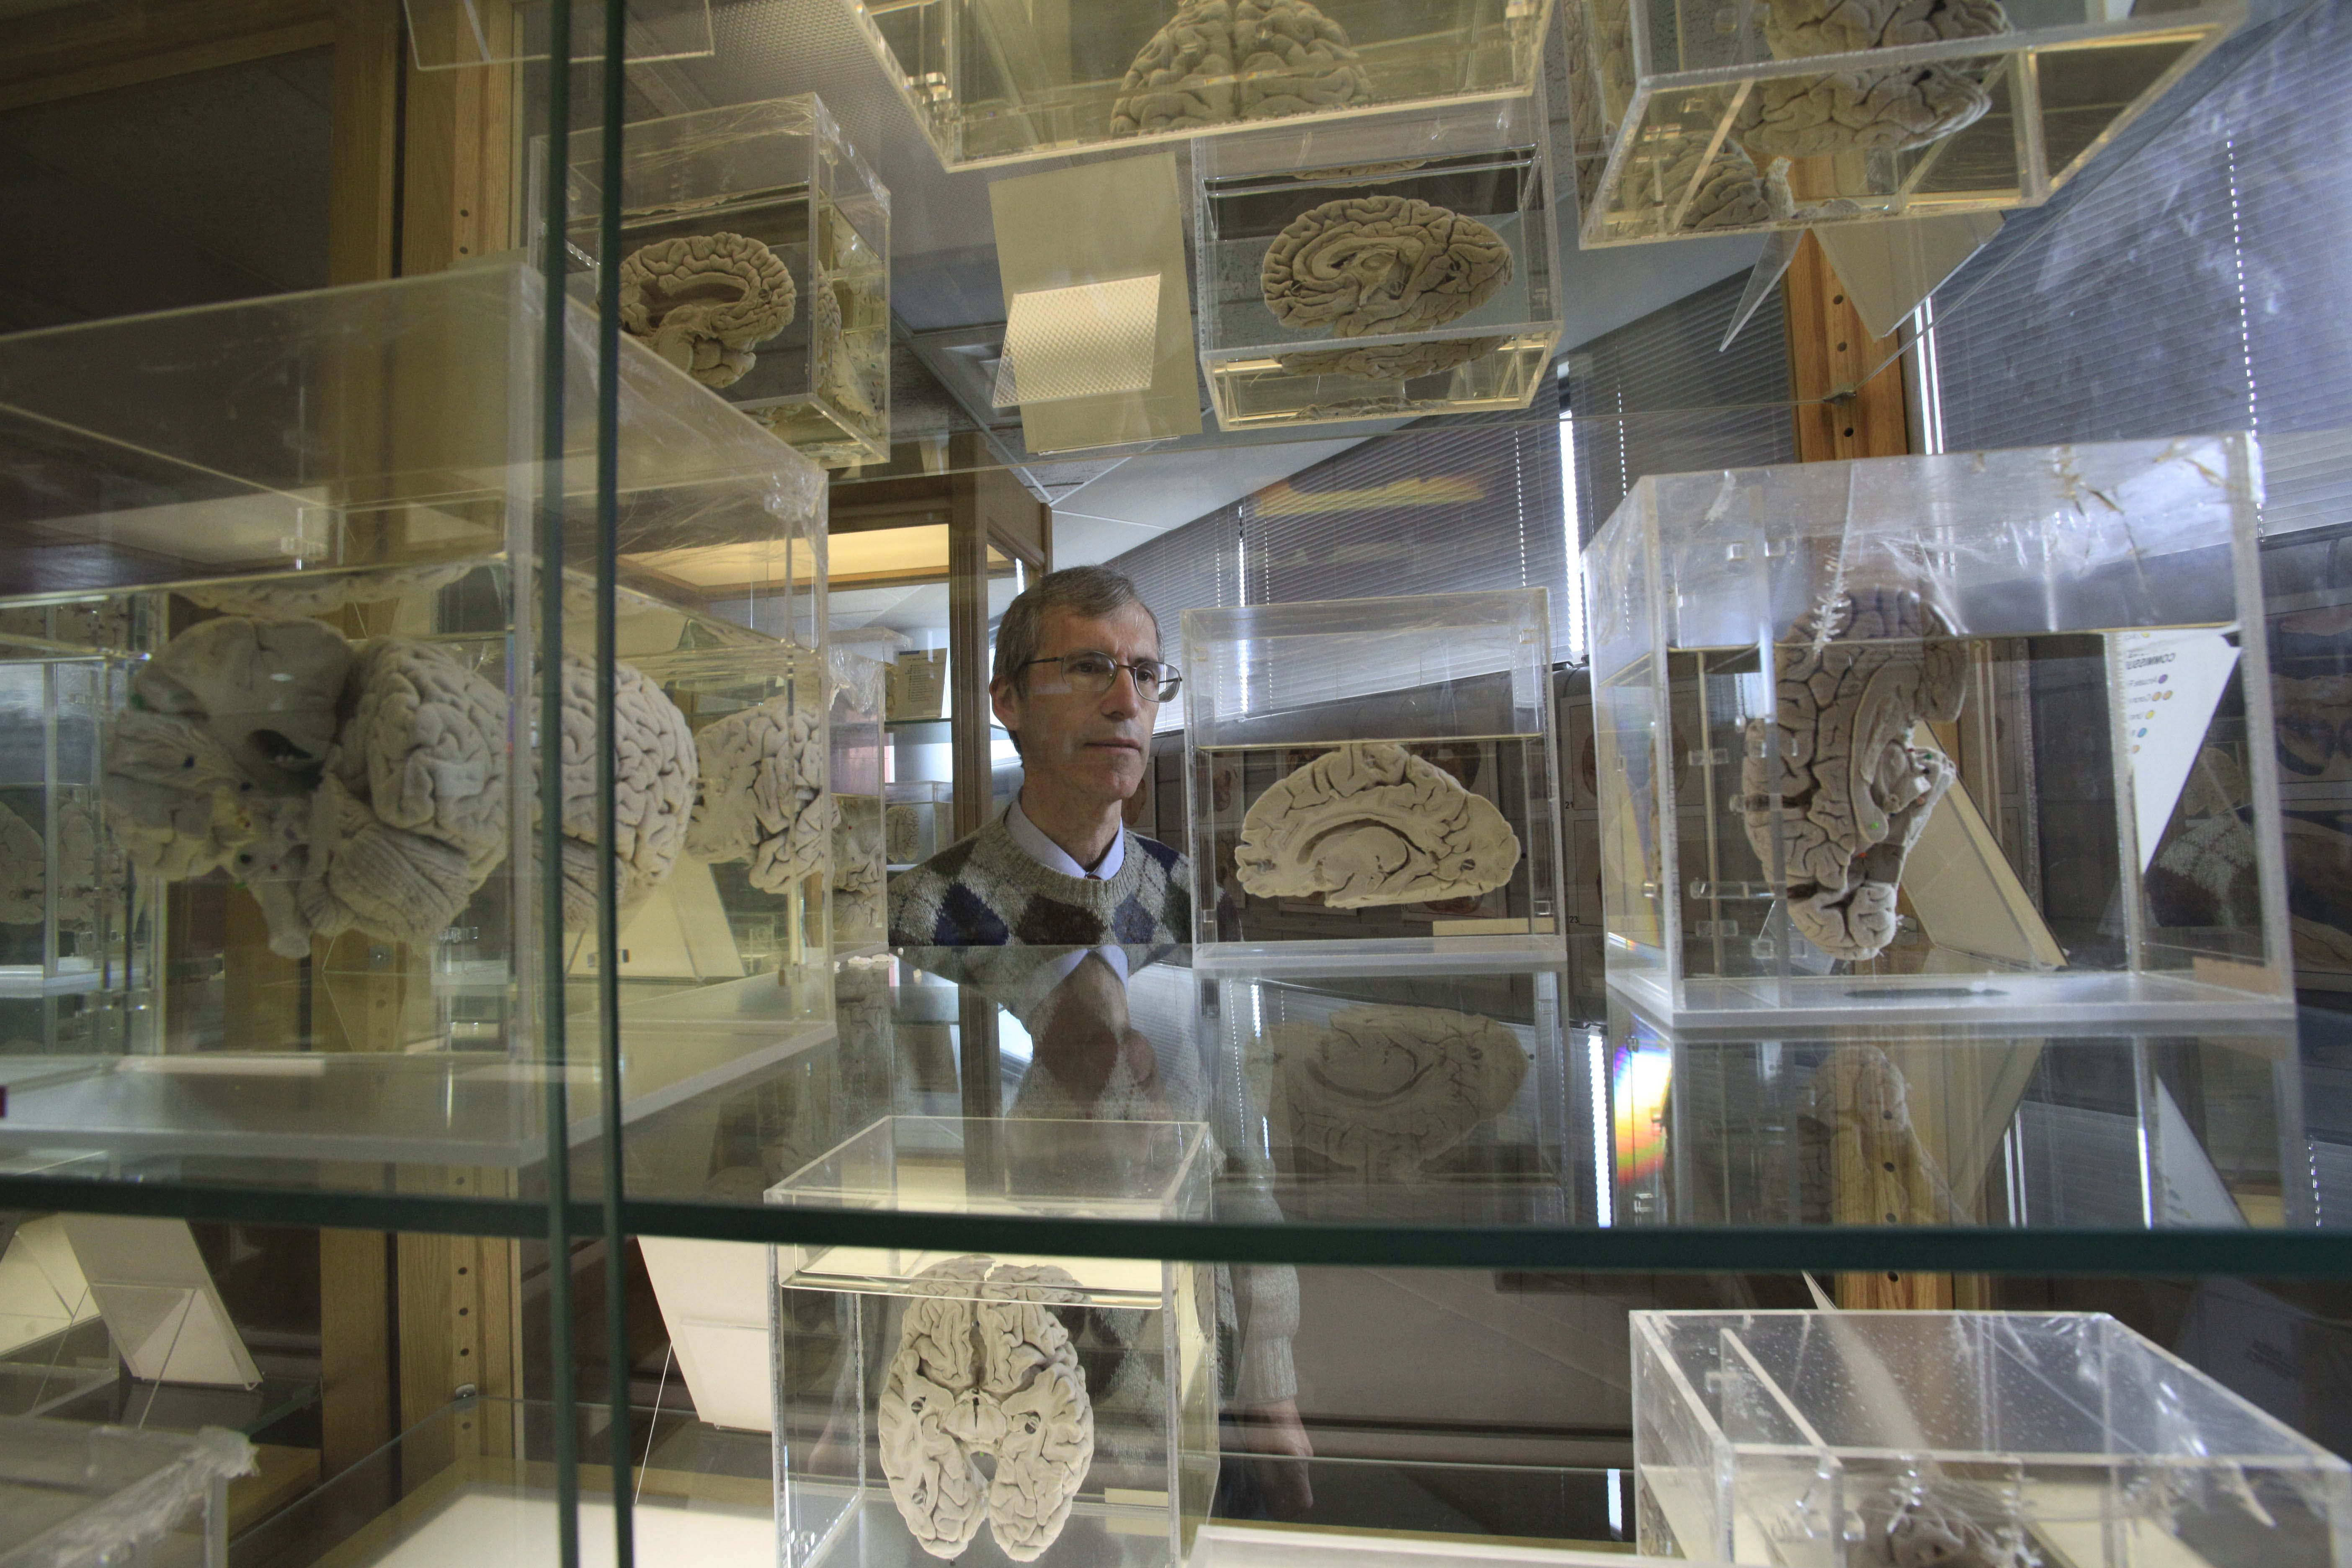 Dr. Chris Cohan, professor of pathology and anatomical sciences, runs the Museum of Neuroanatomy at UB.   (Derek Gee/Buffalo News file photo)